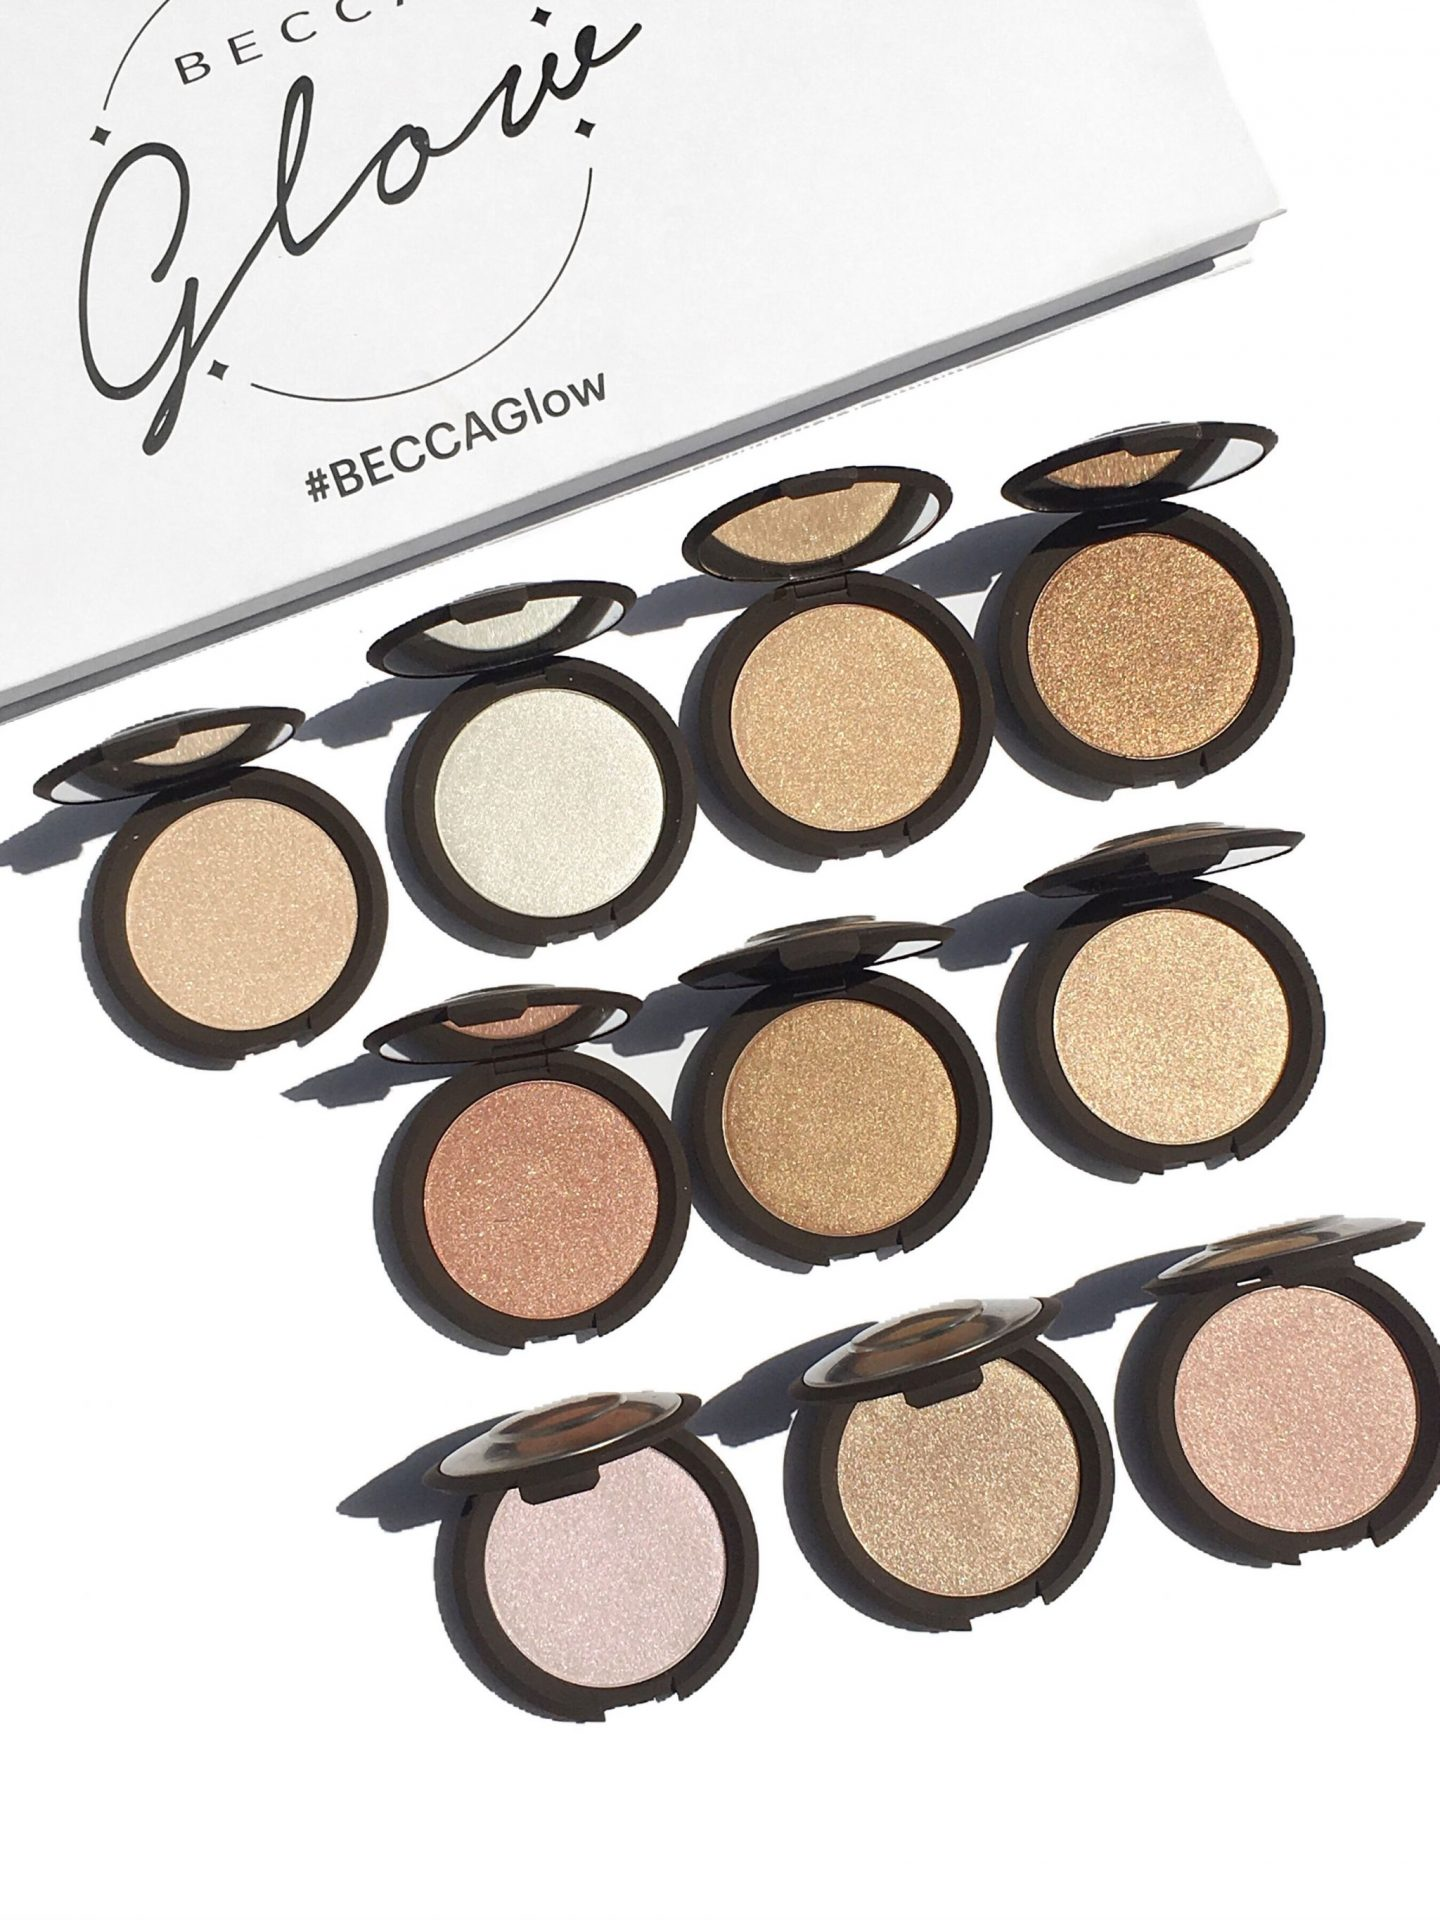 Becca Shimmering Skin Perfector Pressed Highlighters-Find your Perfect Match